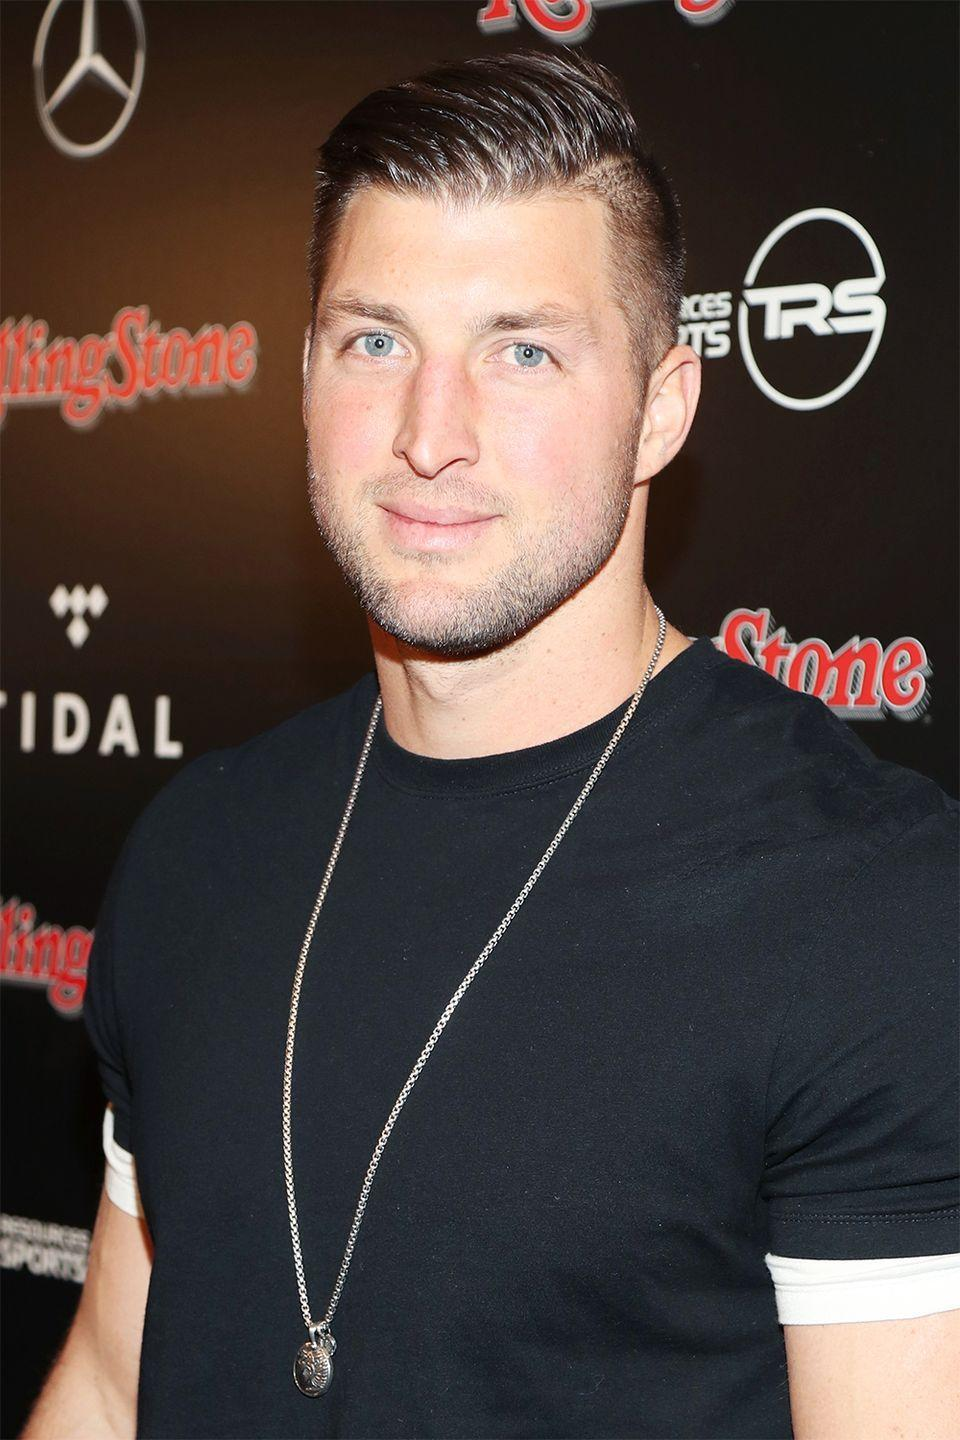 """<p>The former New York Jets quarterback is a devout Christian, and admitted that he was saving himself for marriage. """"It's about finding a girl who likes me for me, and not because of what I do, or who I am, or the name,"""" he said in <a href=""""http://people.com/celebrity/sean-lowe-tim-tebow-lolo-jones-celebrity-virgins/#tim-tebow"""" rel=""""nofollow noopener"""" target=""""_blank"""" data-ylk=""""slk:an interview"""" class=""""link rapid-noclick-resp"""">an interview</a>. </p><p>In a different interview with <em><a href=""""http://people.com/sports/tim-tebow-on-marriage-and-family-i-want-my-kids-to-know-my-dad/"""" rel=""""nofollow noopener"""" target=""""_blank"""" data-ylk=""""slk:People"""" class=""""link rapid-noclick-resp"""">People</a></em> in 2016, he reiterated that he's anxious, but still waiting. """"I think it's something that I'll have to trust God for,"""" he says. """"He'll bring someone along at the right time.""""</p>"""